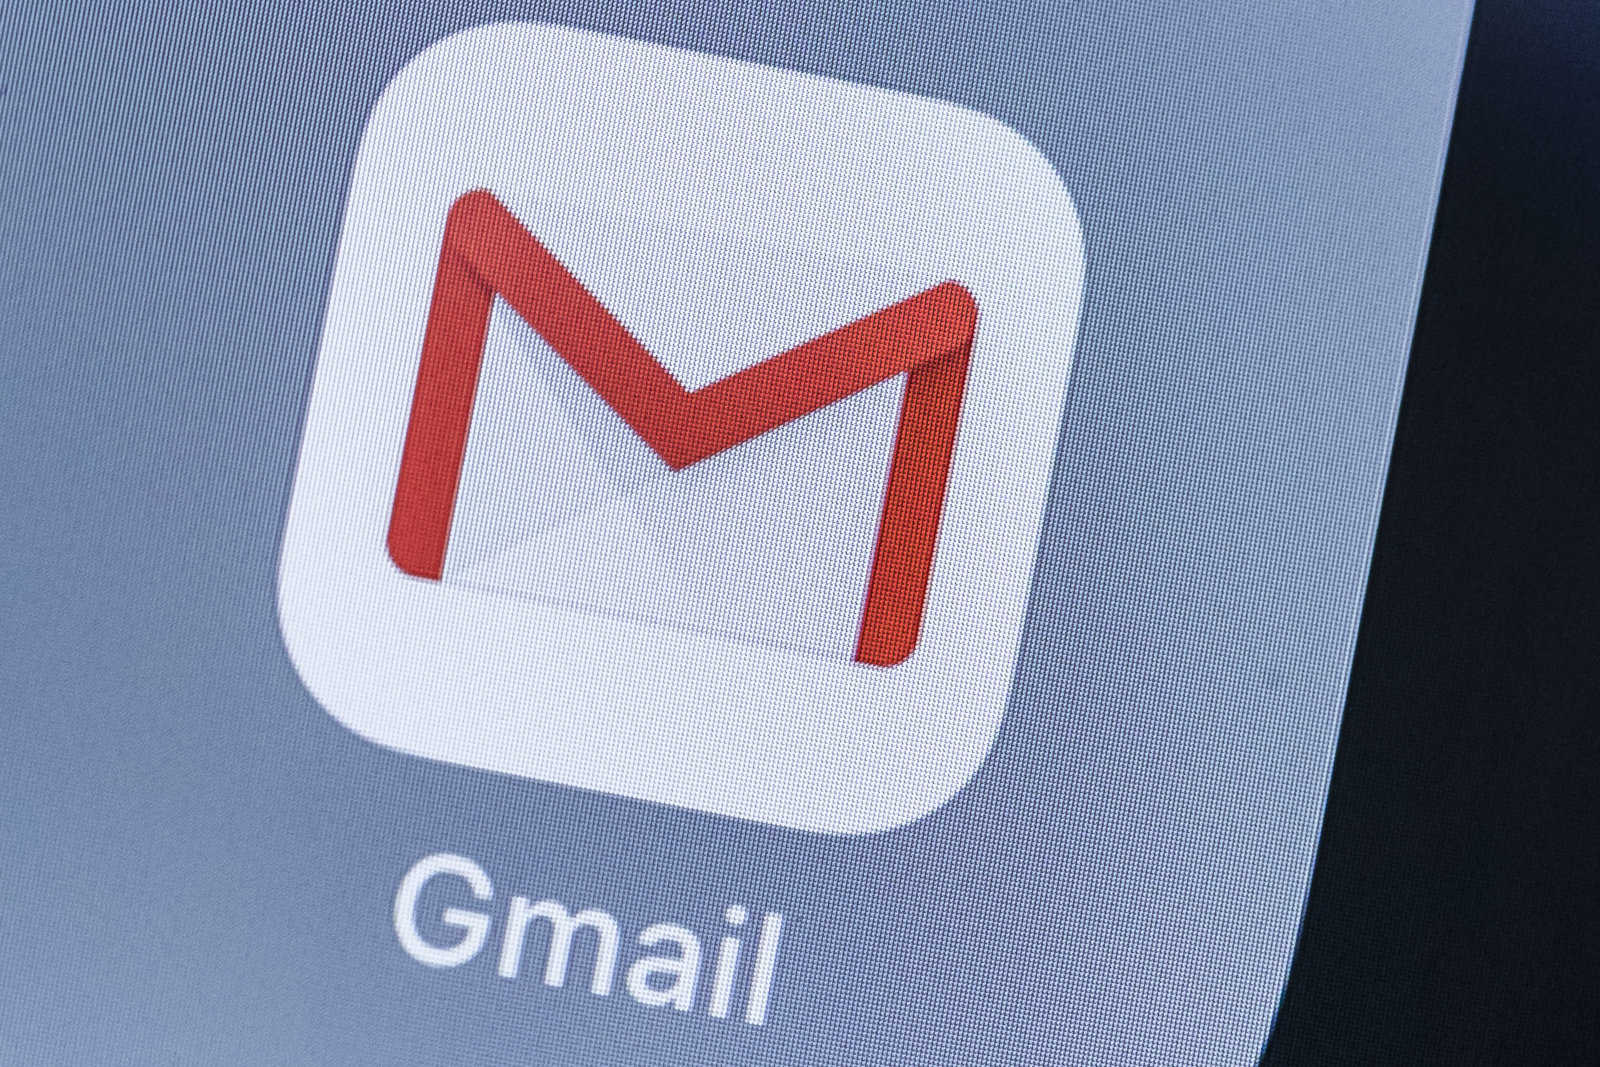 Gmail announces new features to celebrate 15th birthday